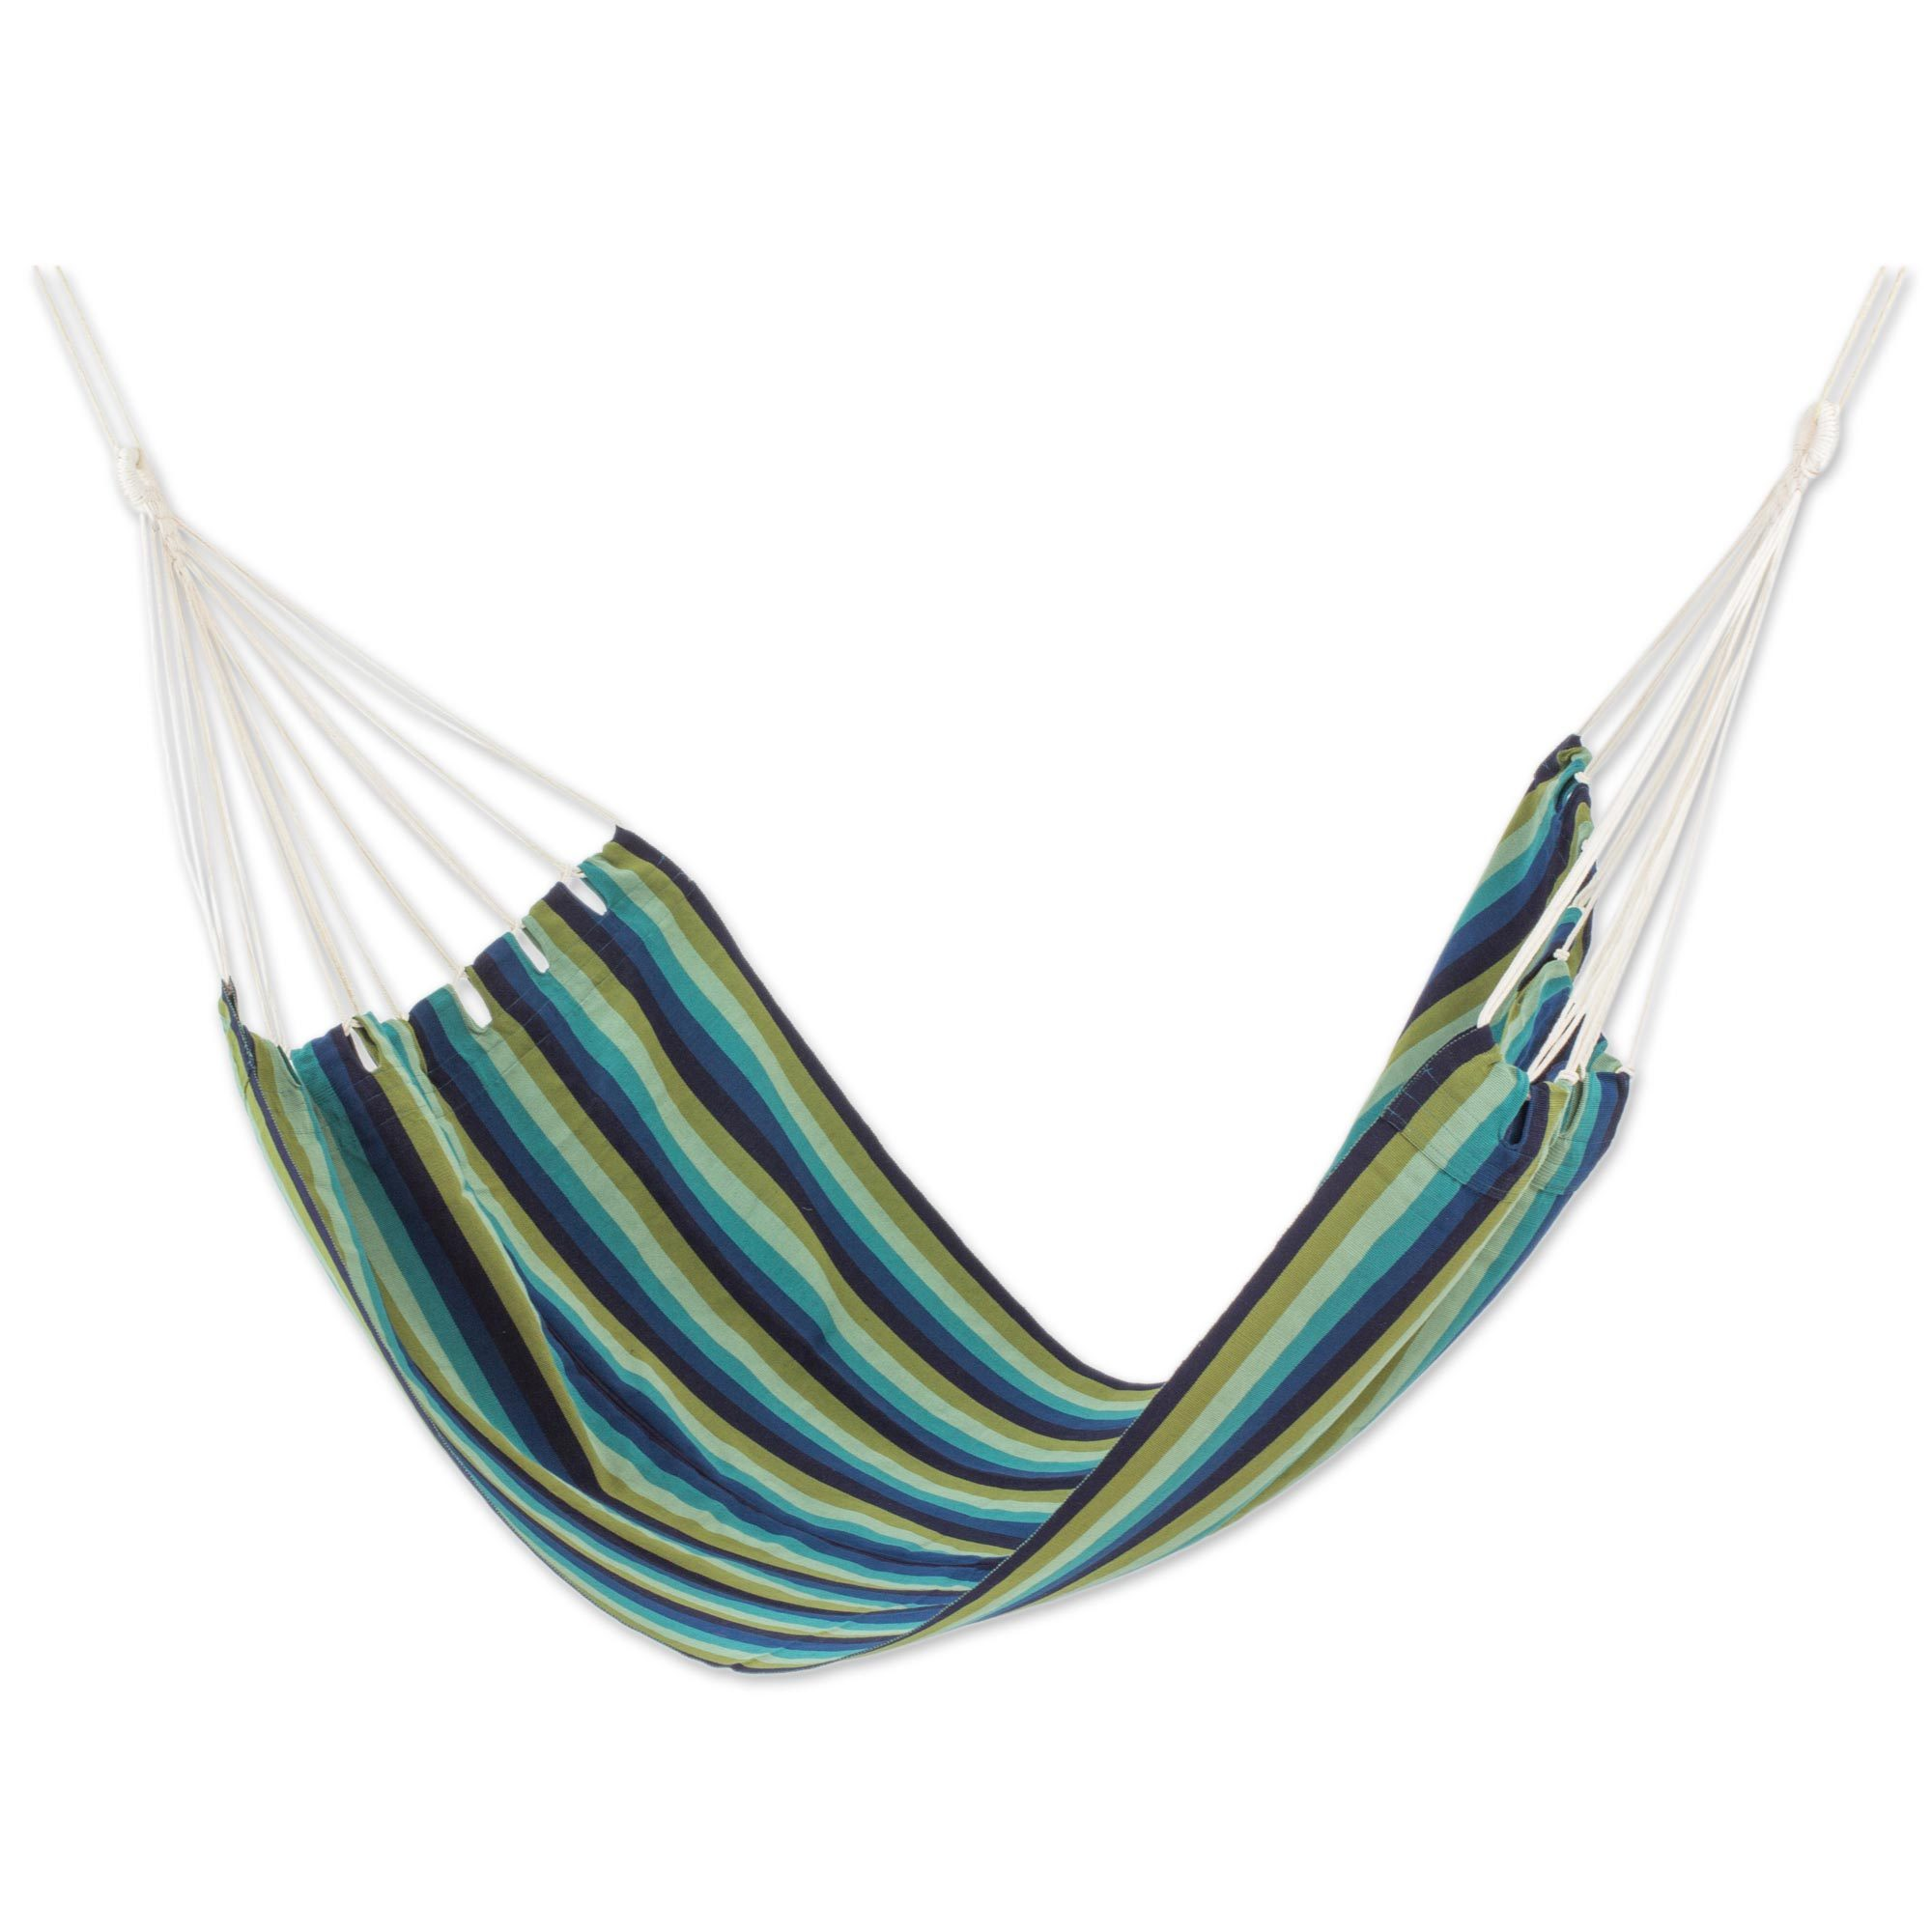 hammocks patio guatemalan single com prod ostkcdn furniture on sale handmade sears living spring buds novica accessories b guatemala hammock src joyous outdoor